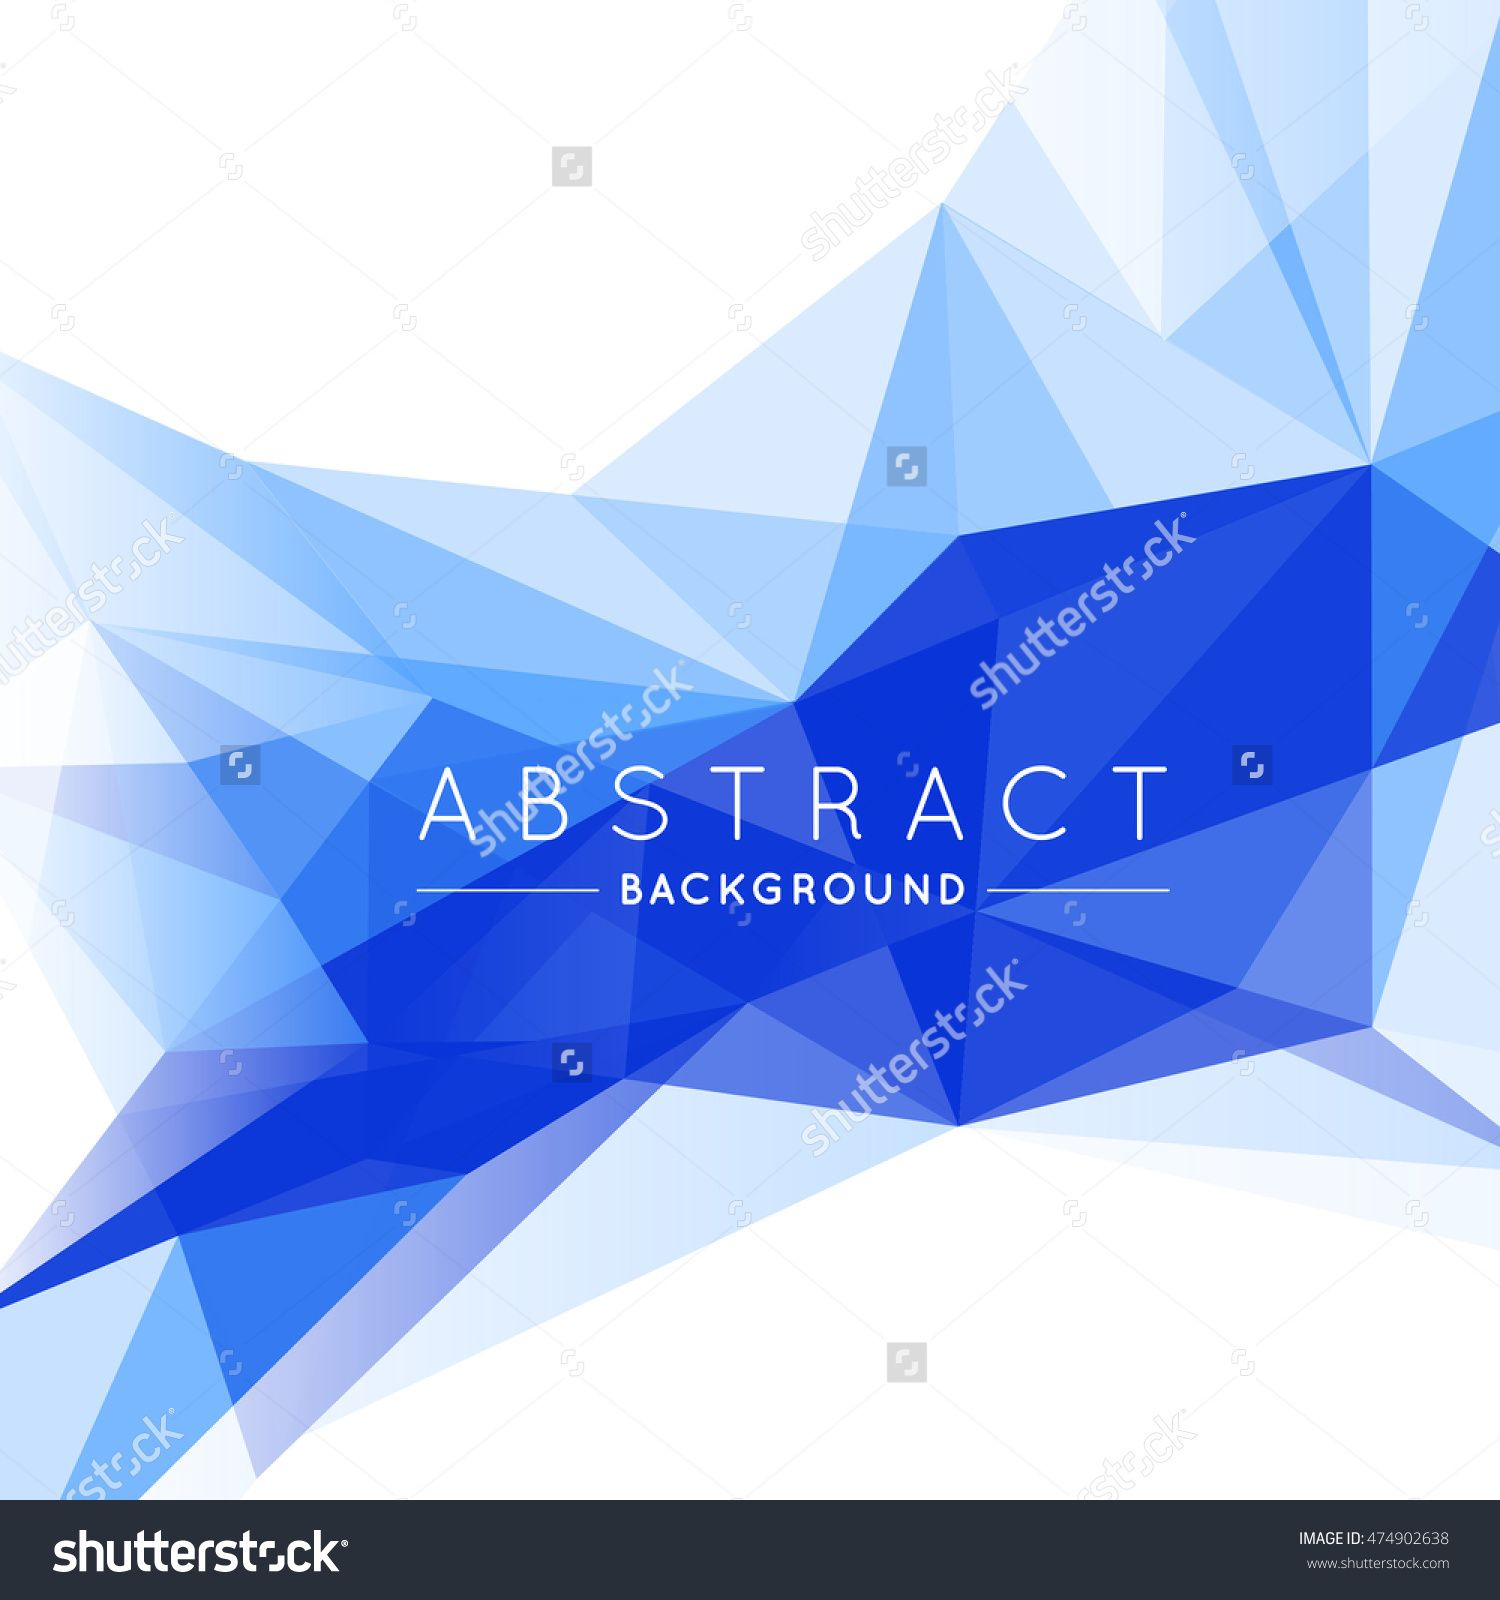 Geometric Blue And White Abstract Vector Background For Use In